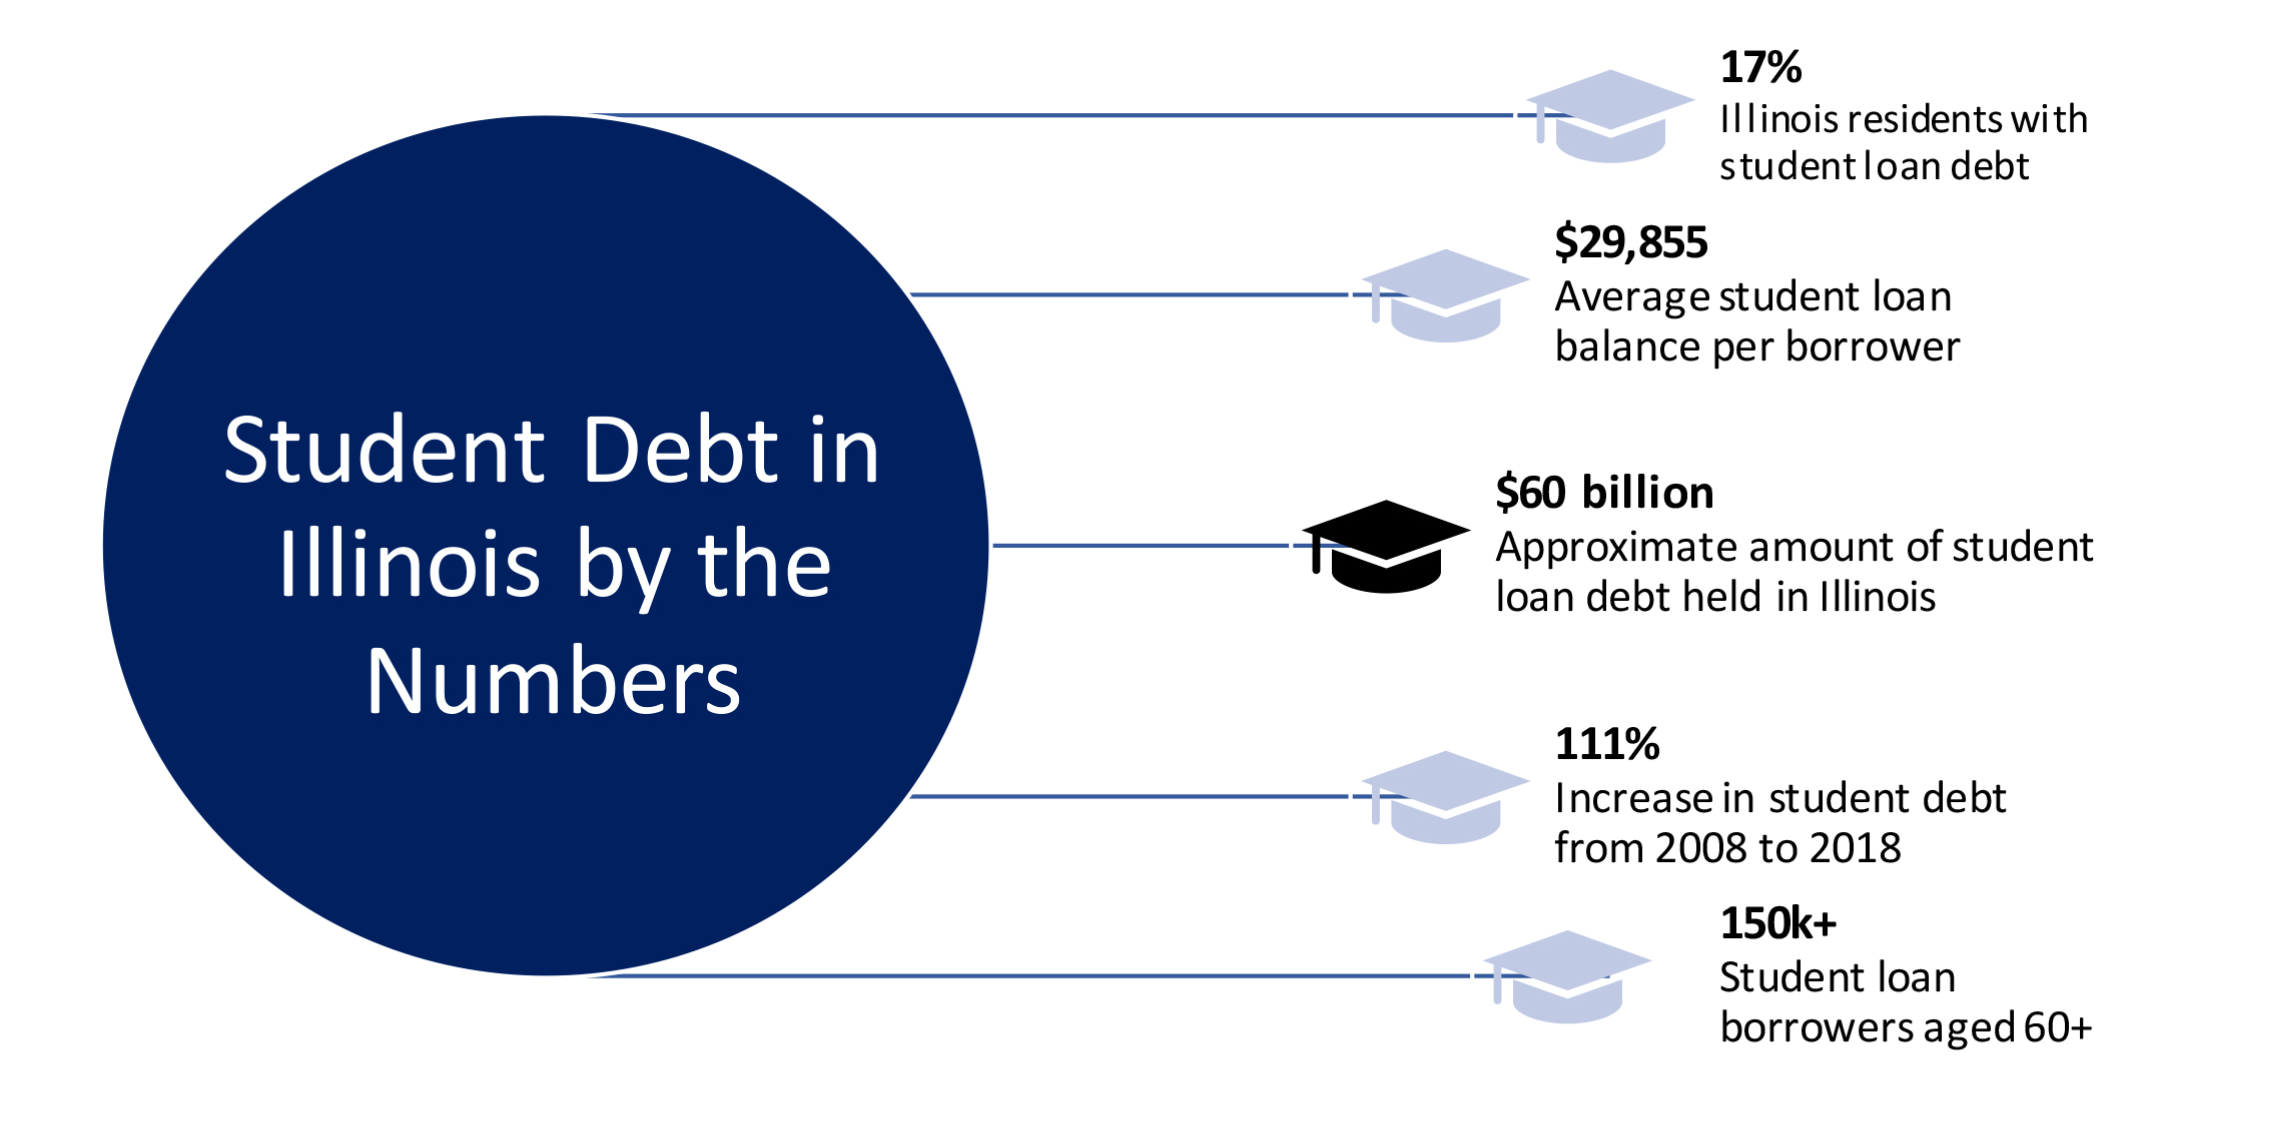 Student Debt in Illinois by the Numbers